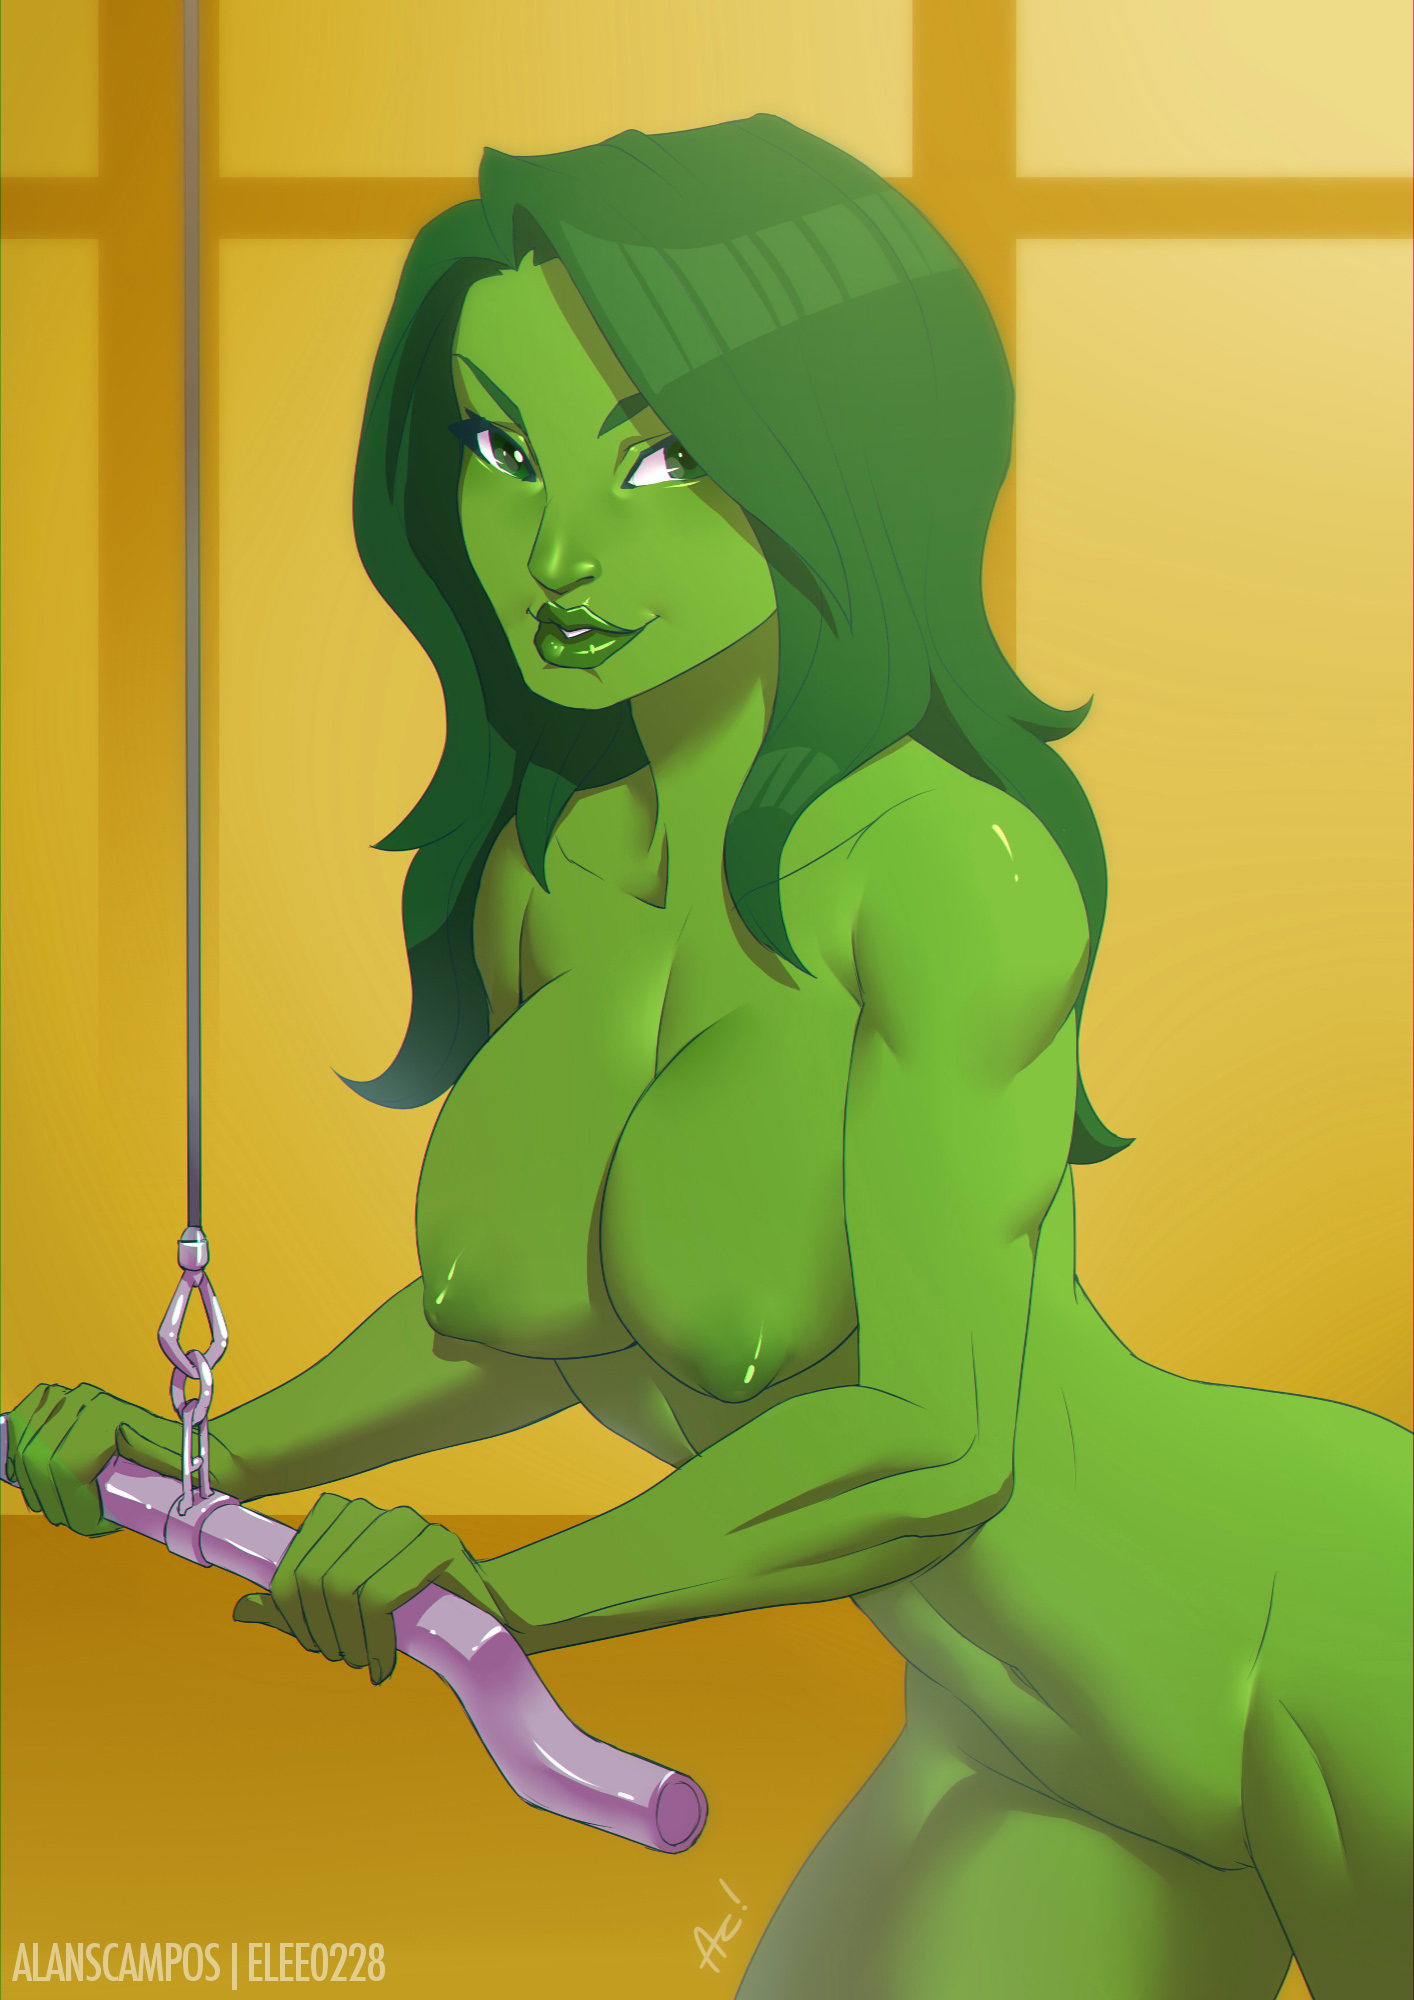 from Mathias she hulk having sex nude